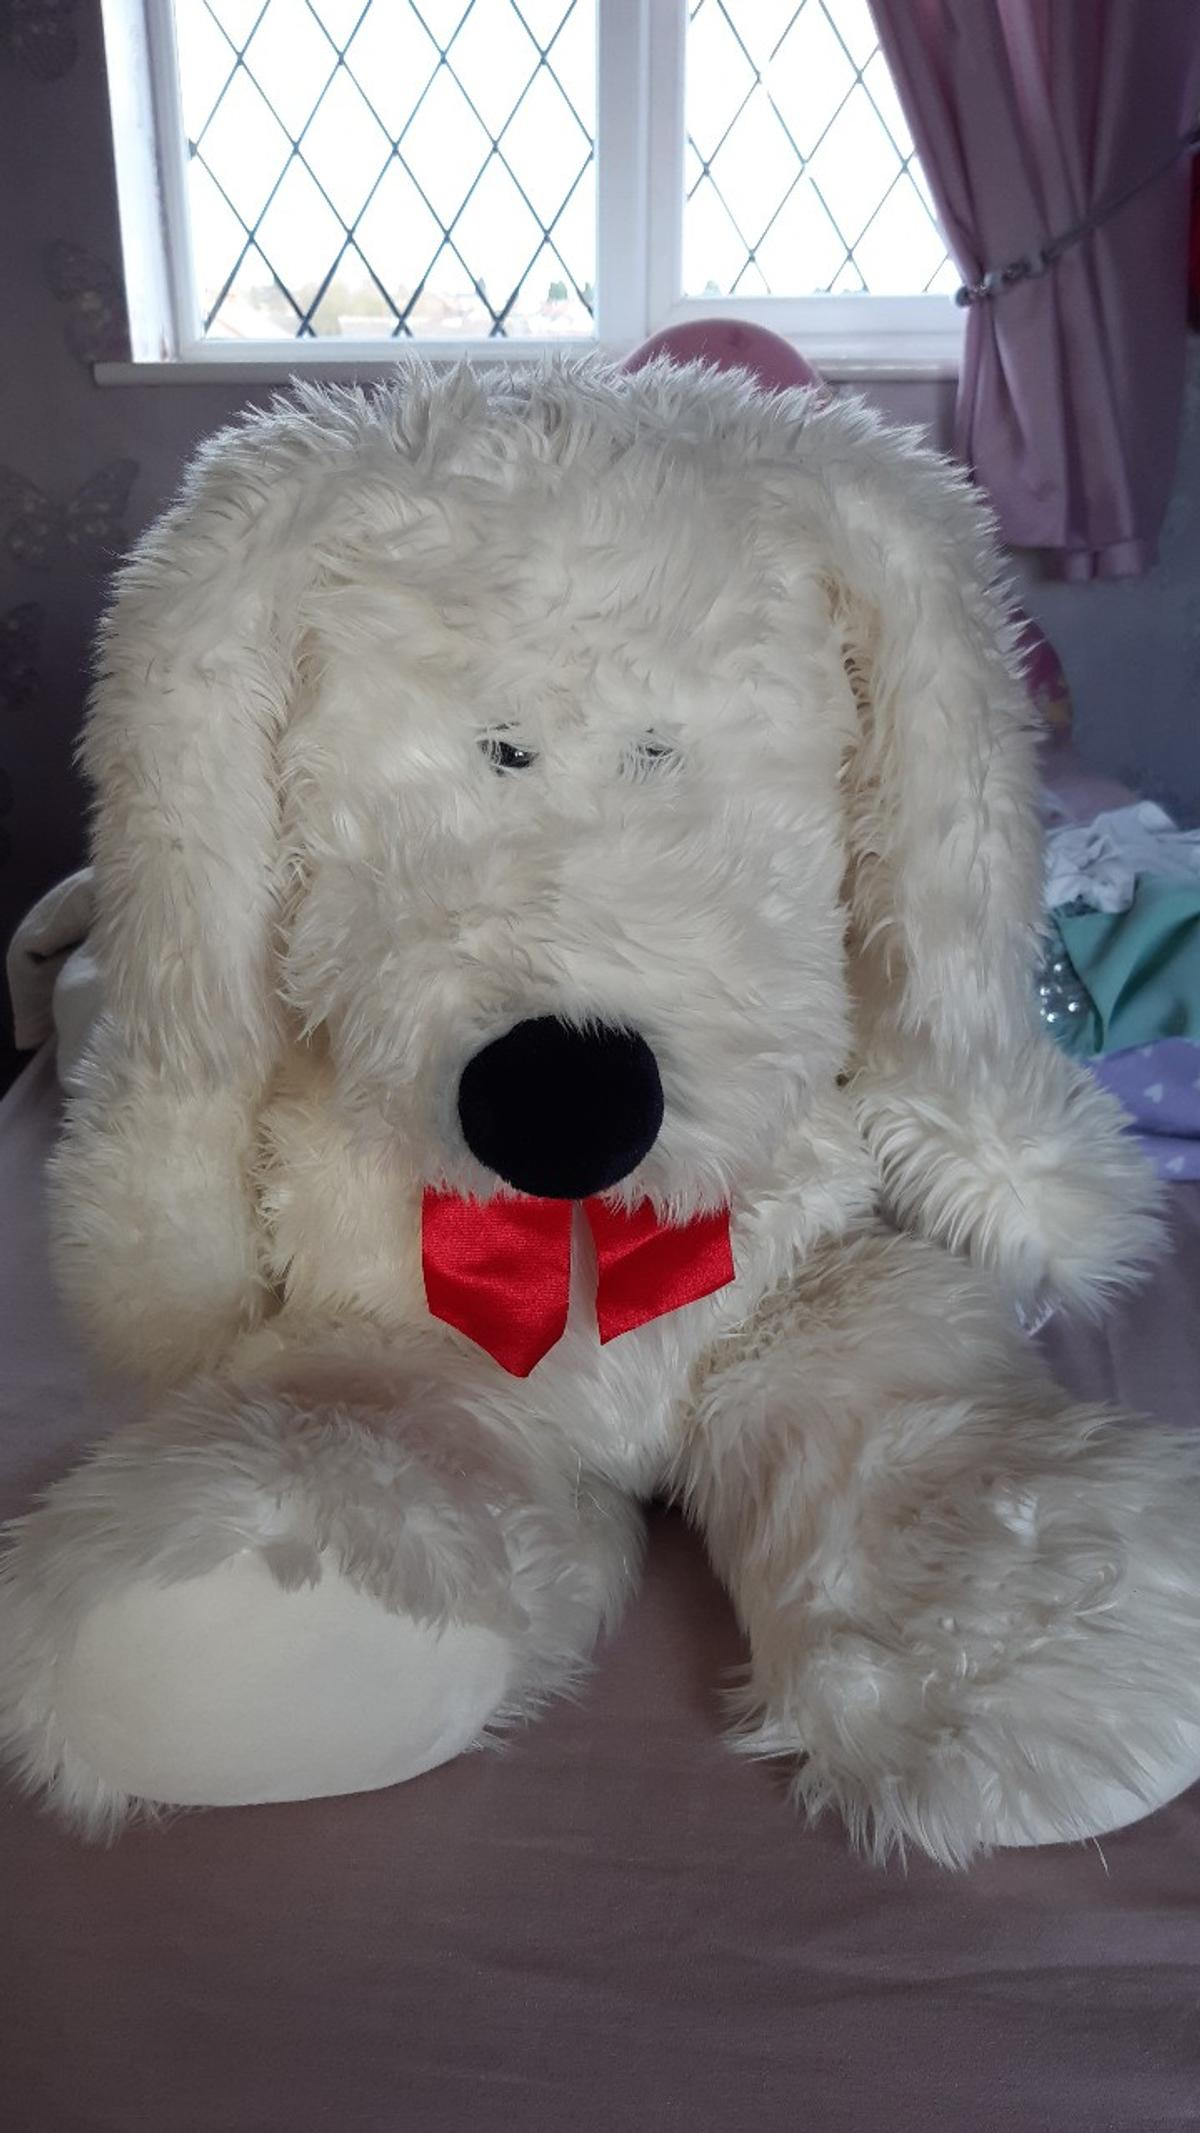 Hay Hay Chicken Stuffed Animal, Big Fluffy Teddy In Dy5 Dudley For 5 00 For Sale Shpock